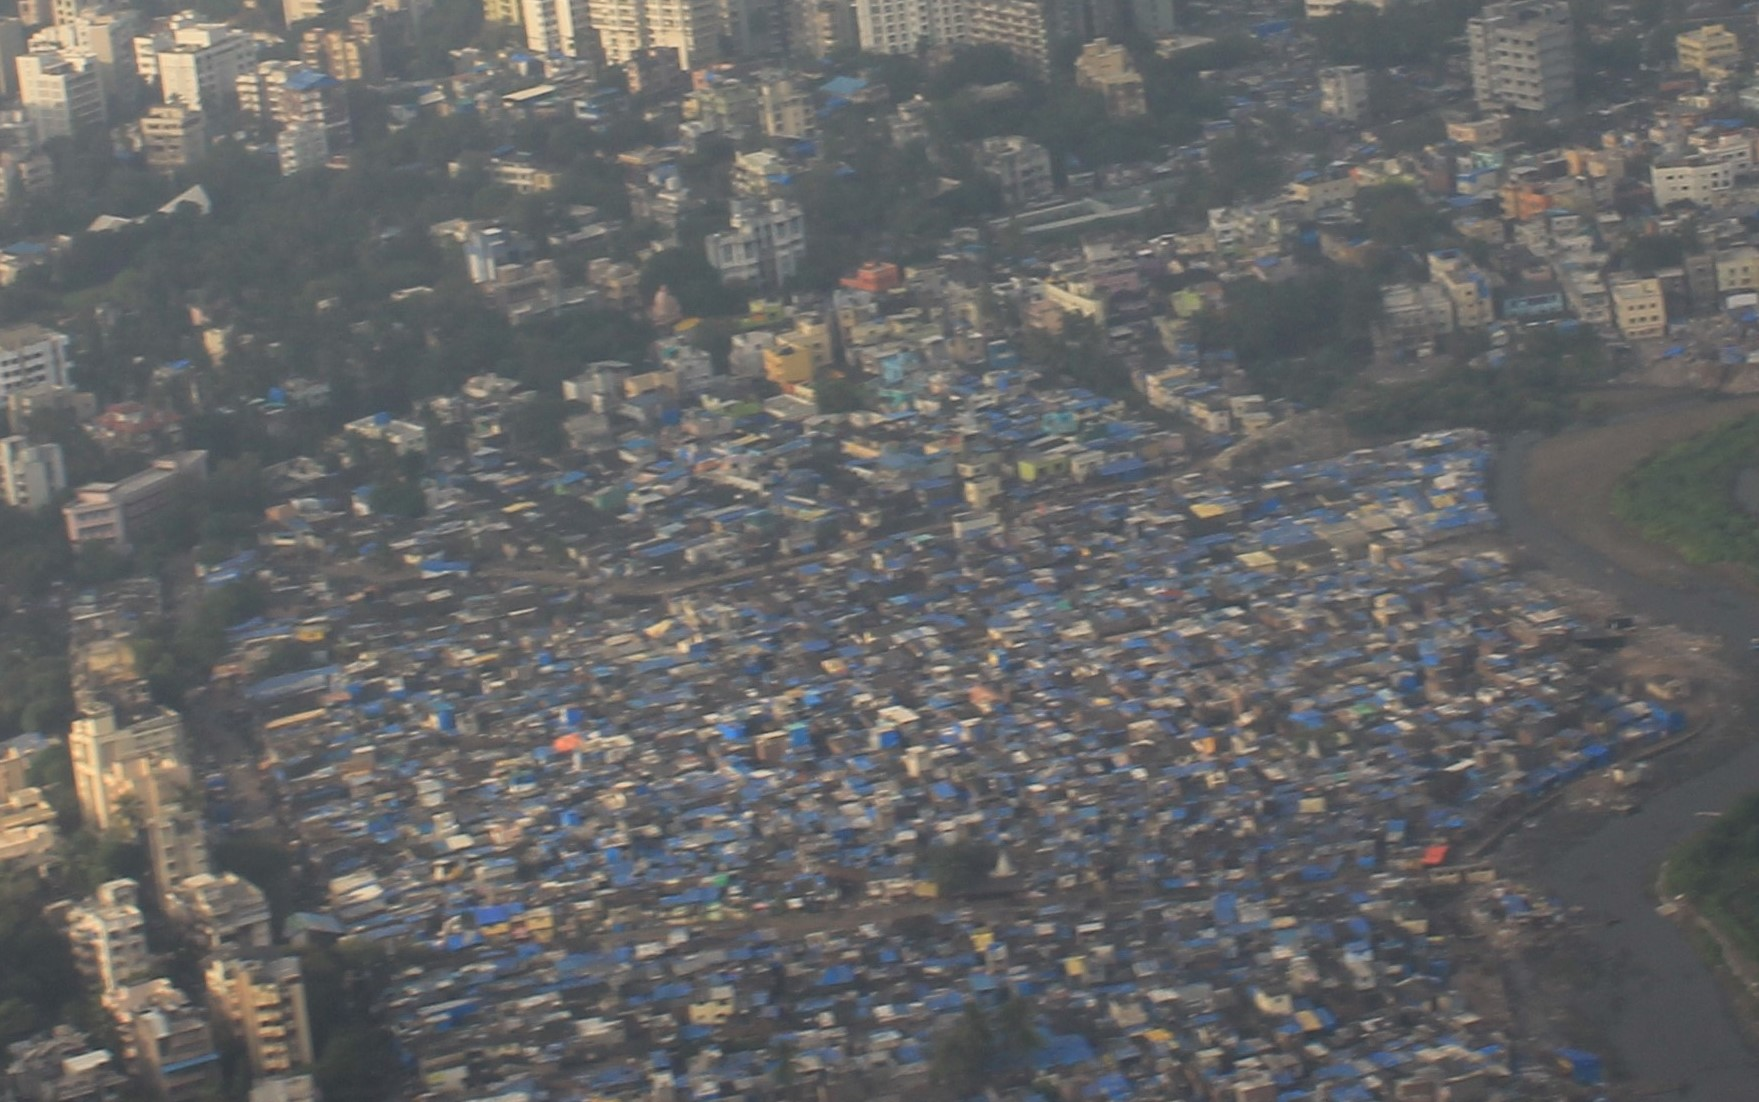 Aerial View of Slums competing for space with affluent highrises disturbing the natural waterways leading water flow to the ocean and precious mangroves